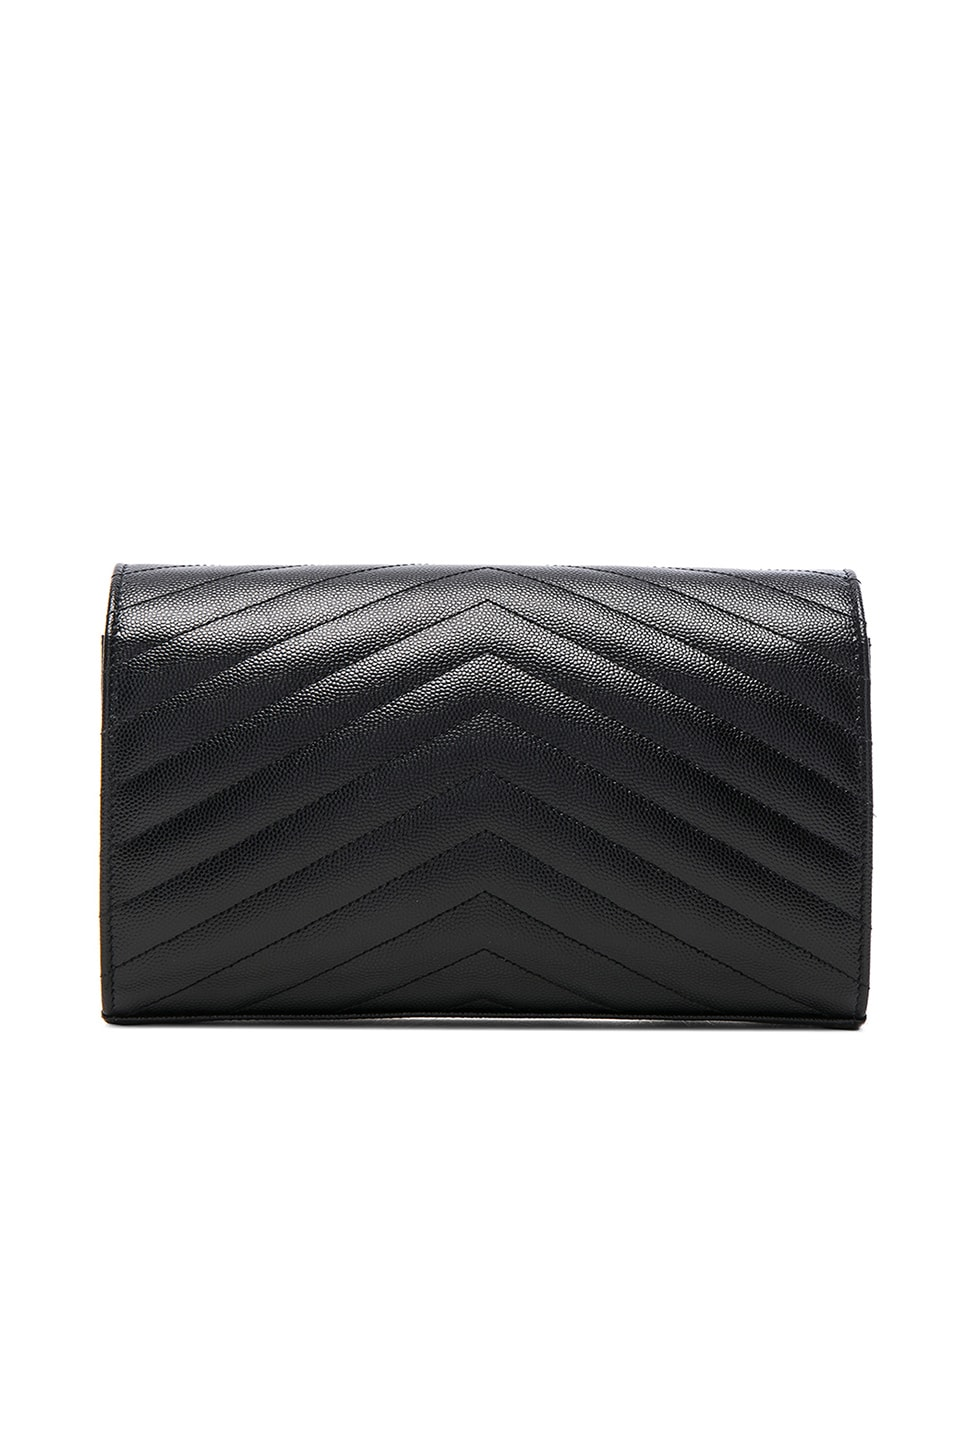 Image 3 of Saint Laurent Monogramme Chain Wallet in Black